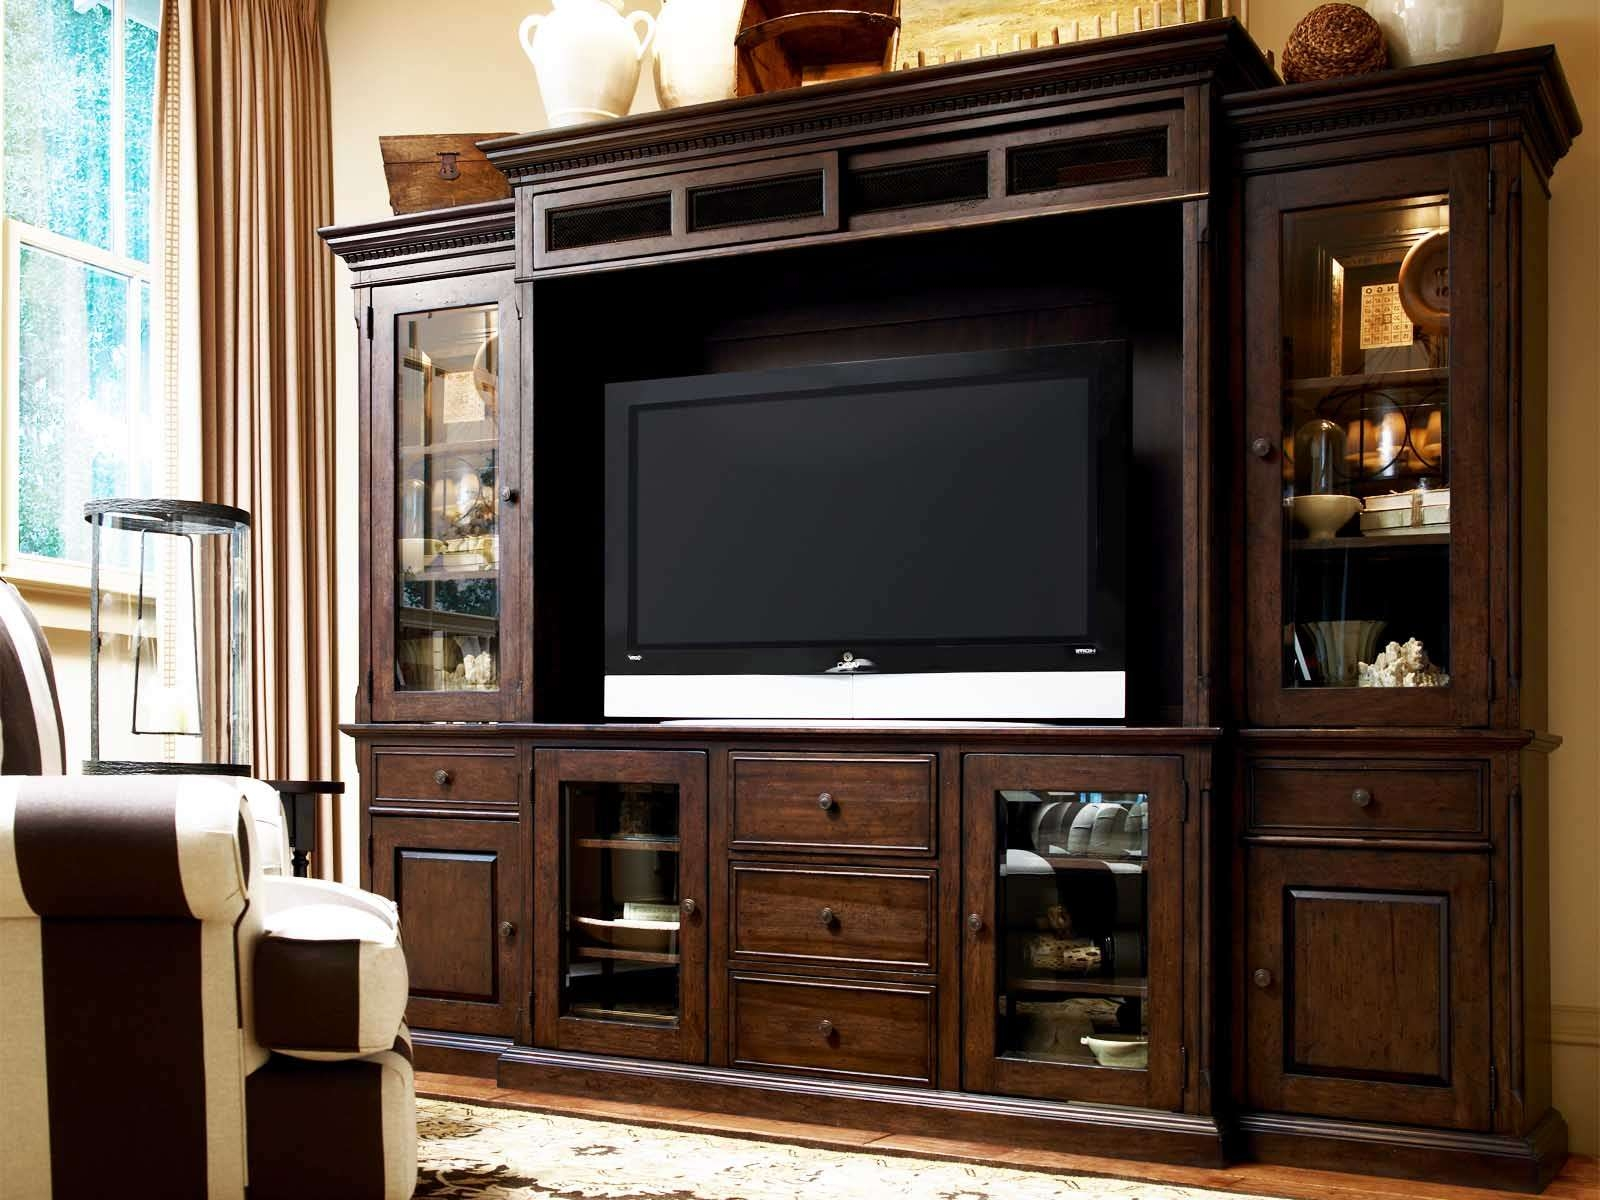 Tv Stand With Hutch Be Equipped Cabinet Drawer Made Of Wood For For Tv Cabinets With Glass Doors (View 8 of 20)